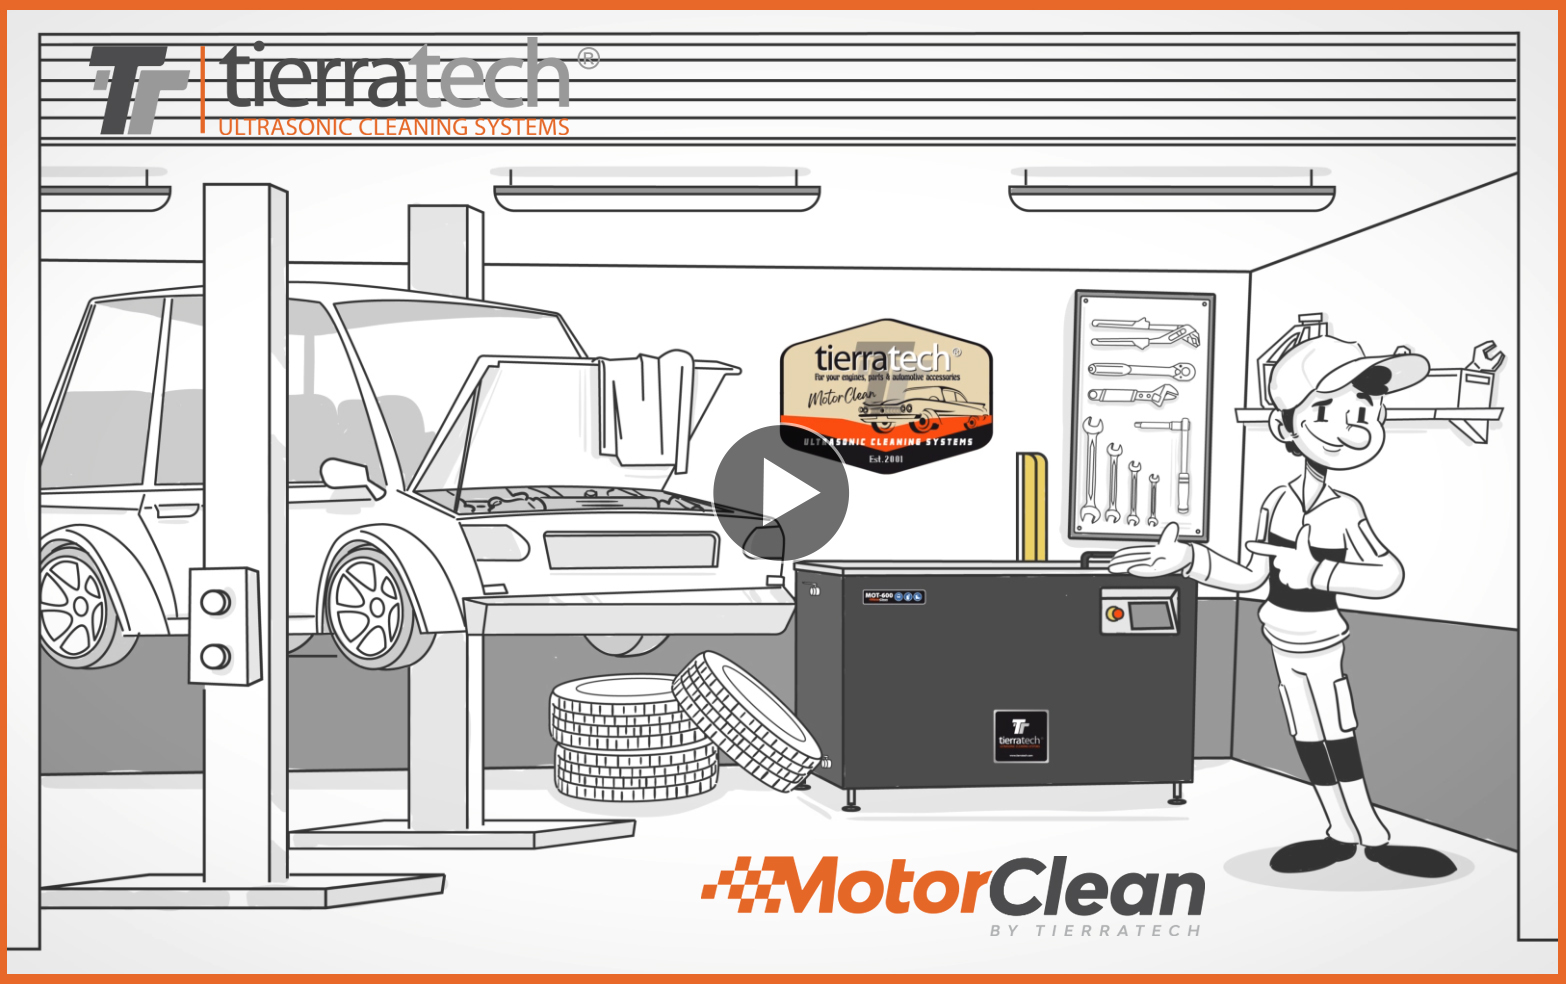 Ultrasonic cleaning in automotive workshops